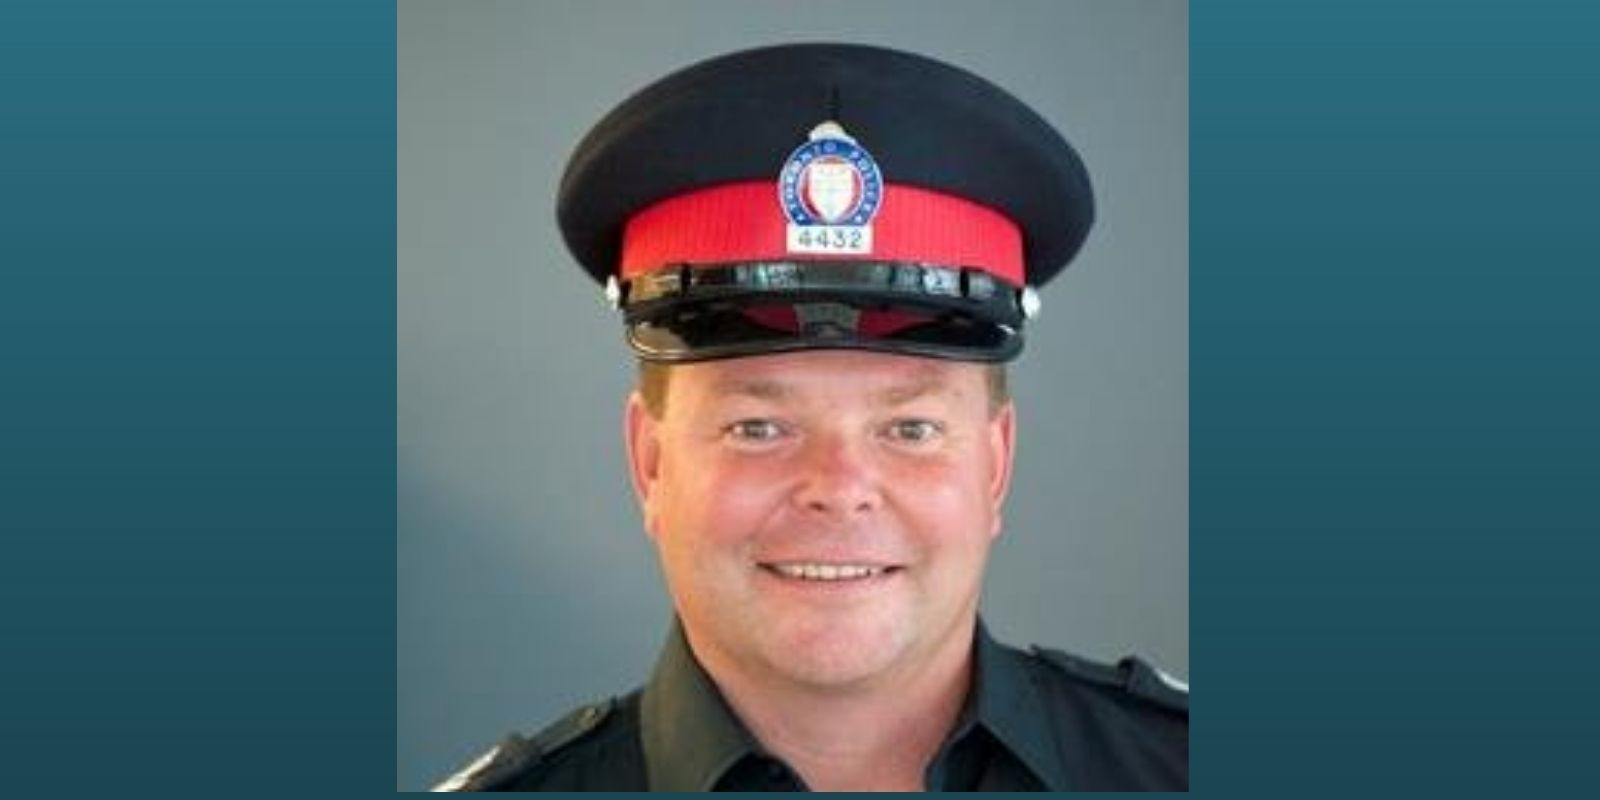 Toronto Police Service inspector arrested, charged with impaired driving